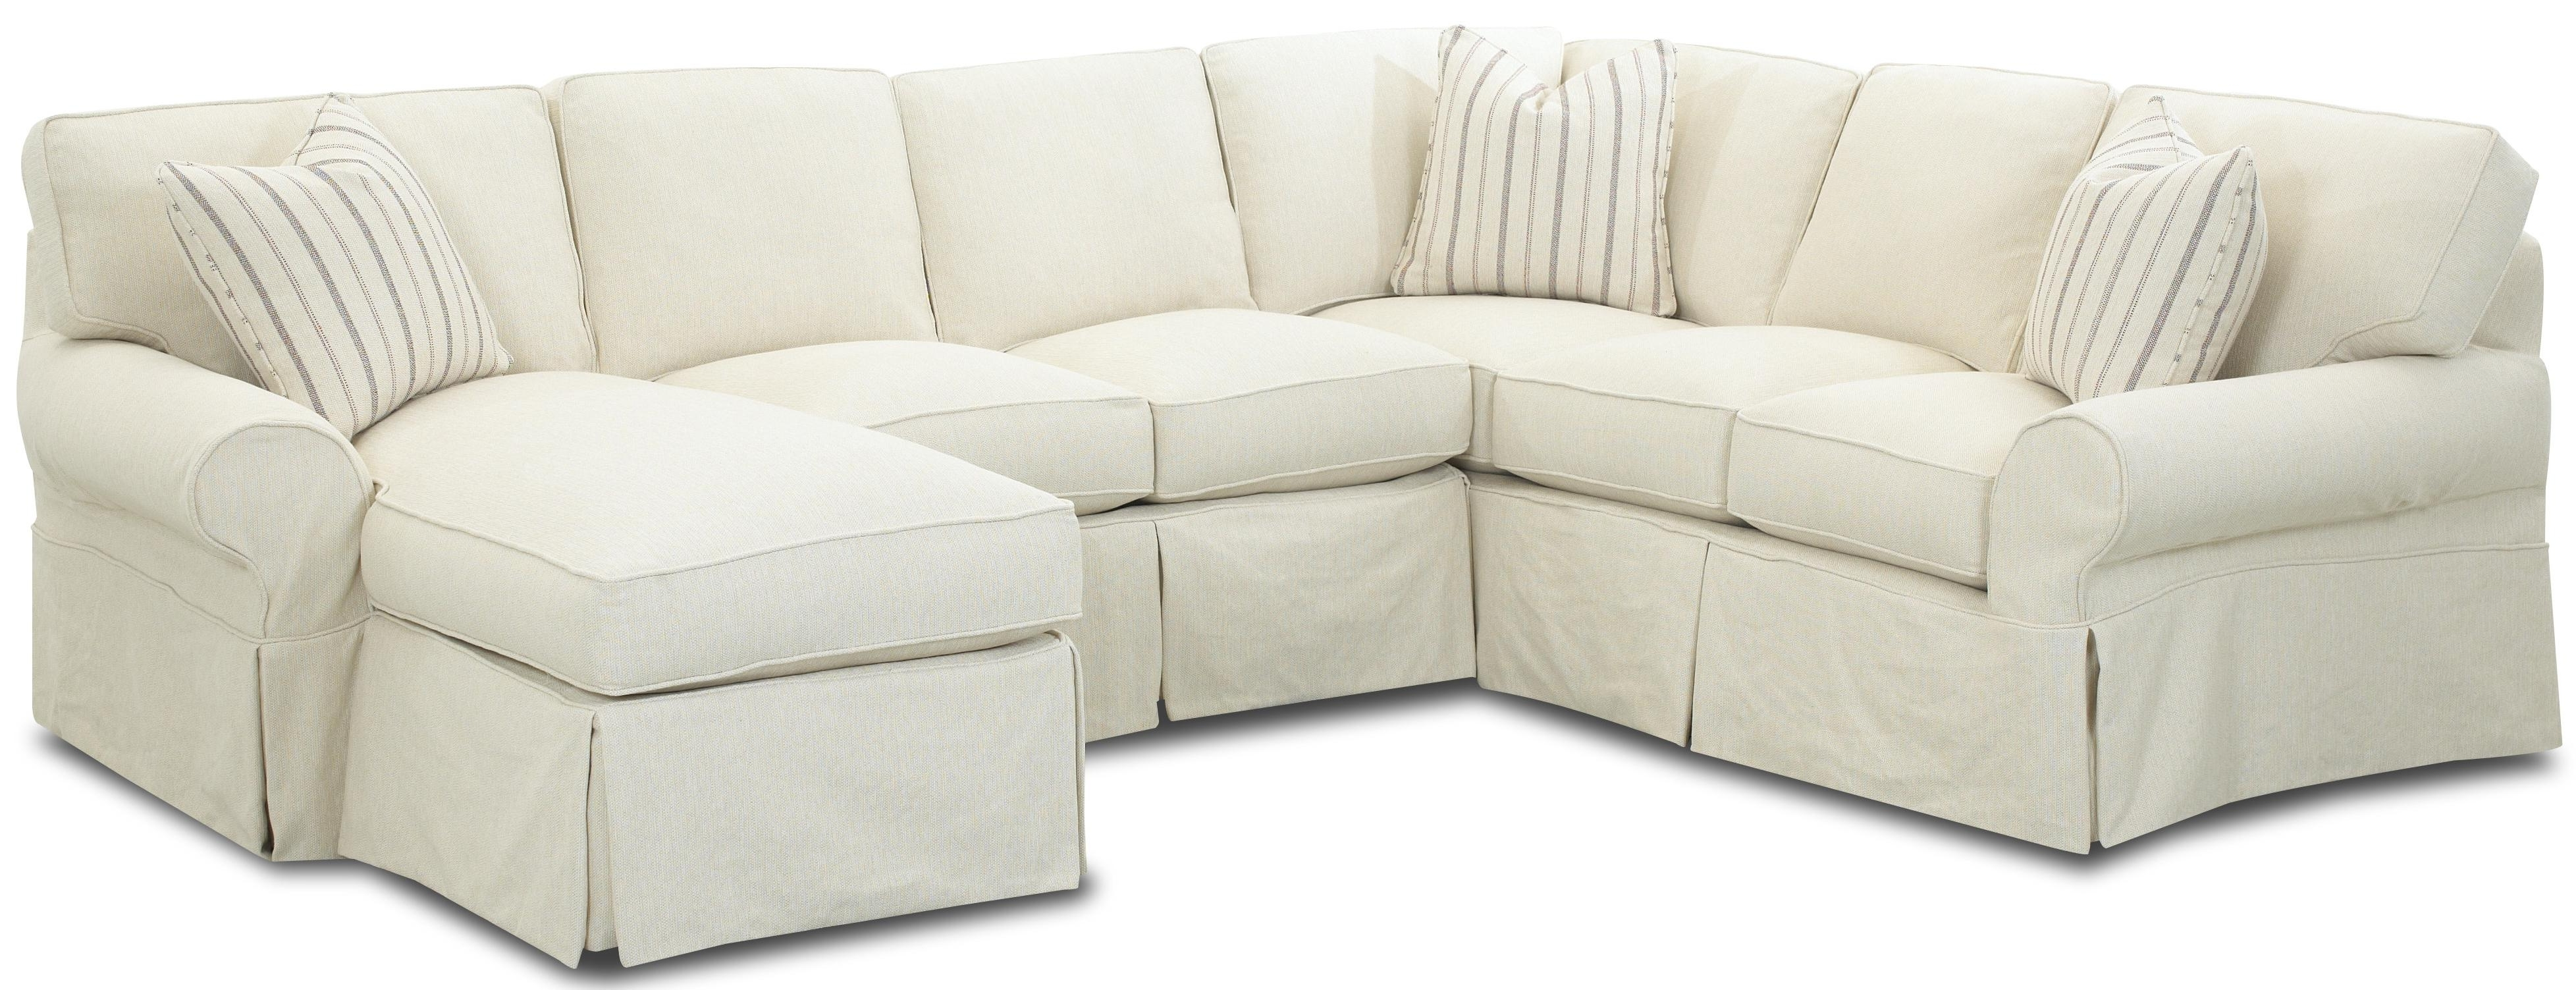 Awesome Slipcover Sectional Sofa With Chaise 91 For Modern Sofa Within Favorite Slipcovers For Sectional Sofa With Chaise (View 3 of 15)